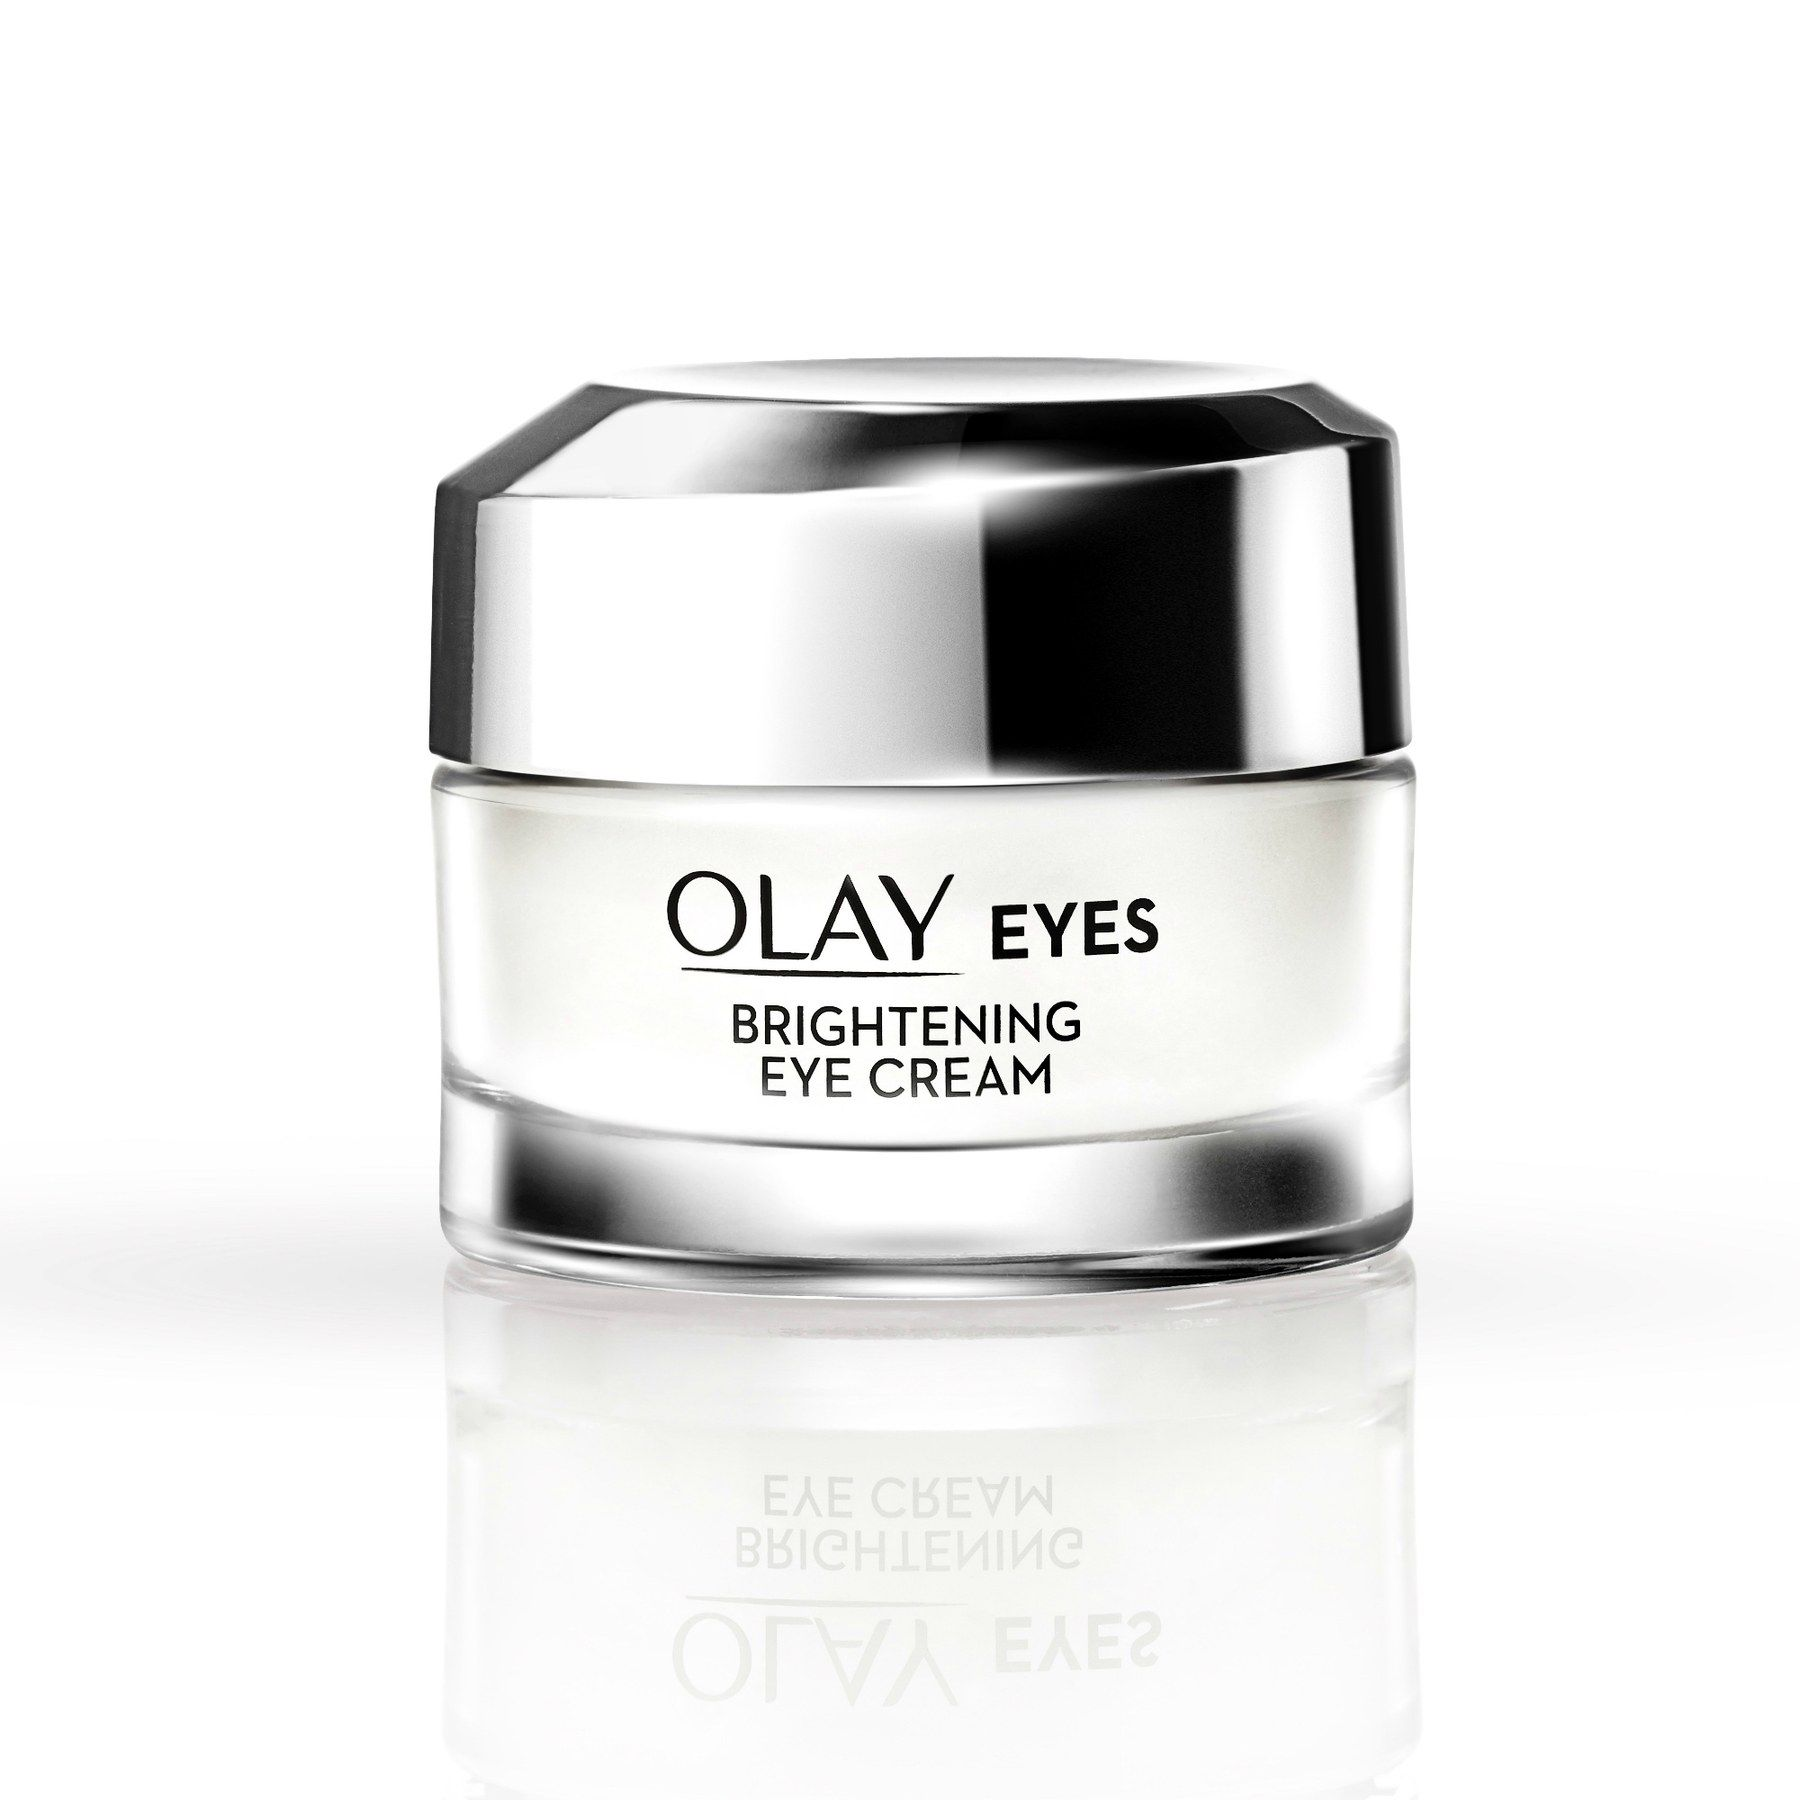 Best Rated Eye Cream 2019 The 32 Best Eye Creams for Dark Circles and Puffiness in 2019